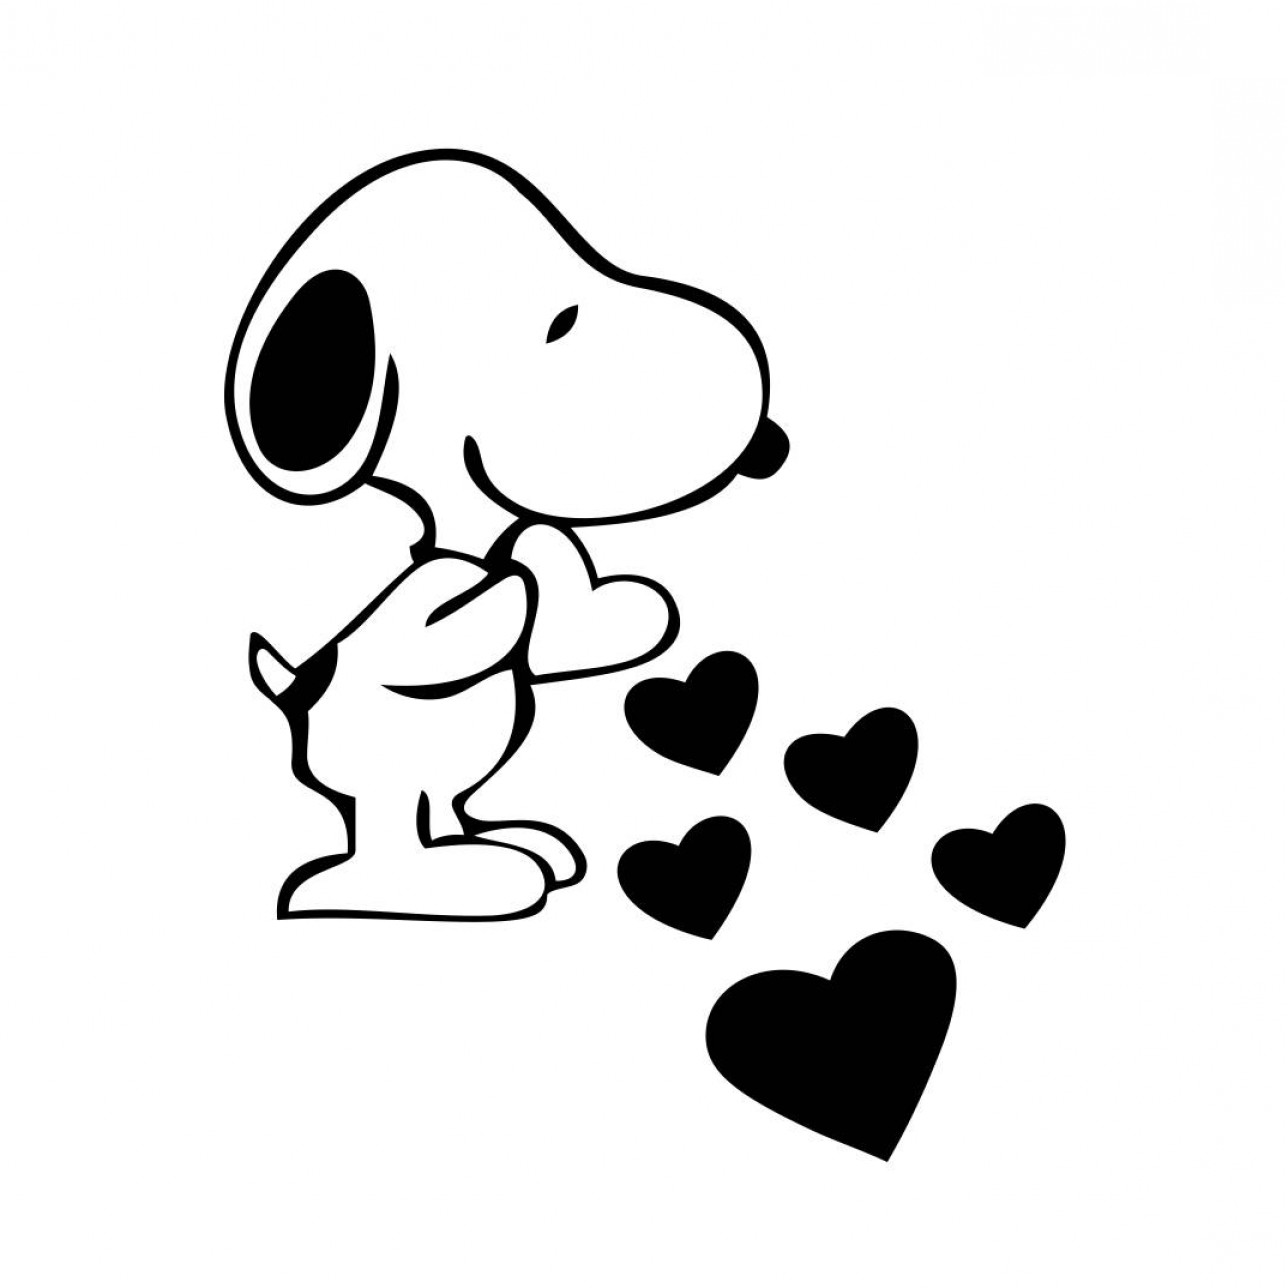 Snoopy Vector Graphic: Snoopy Love Hearts Graphics Svg Dxf Eps